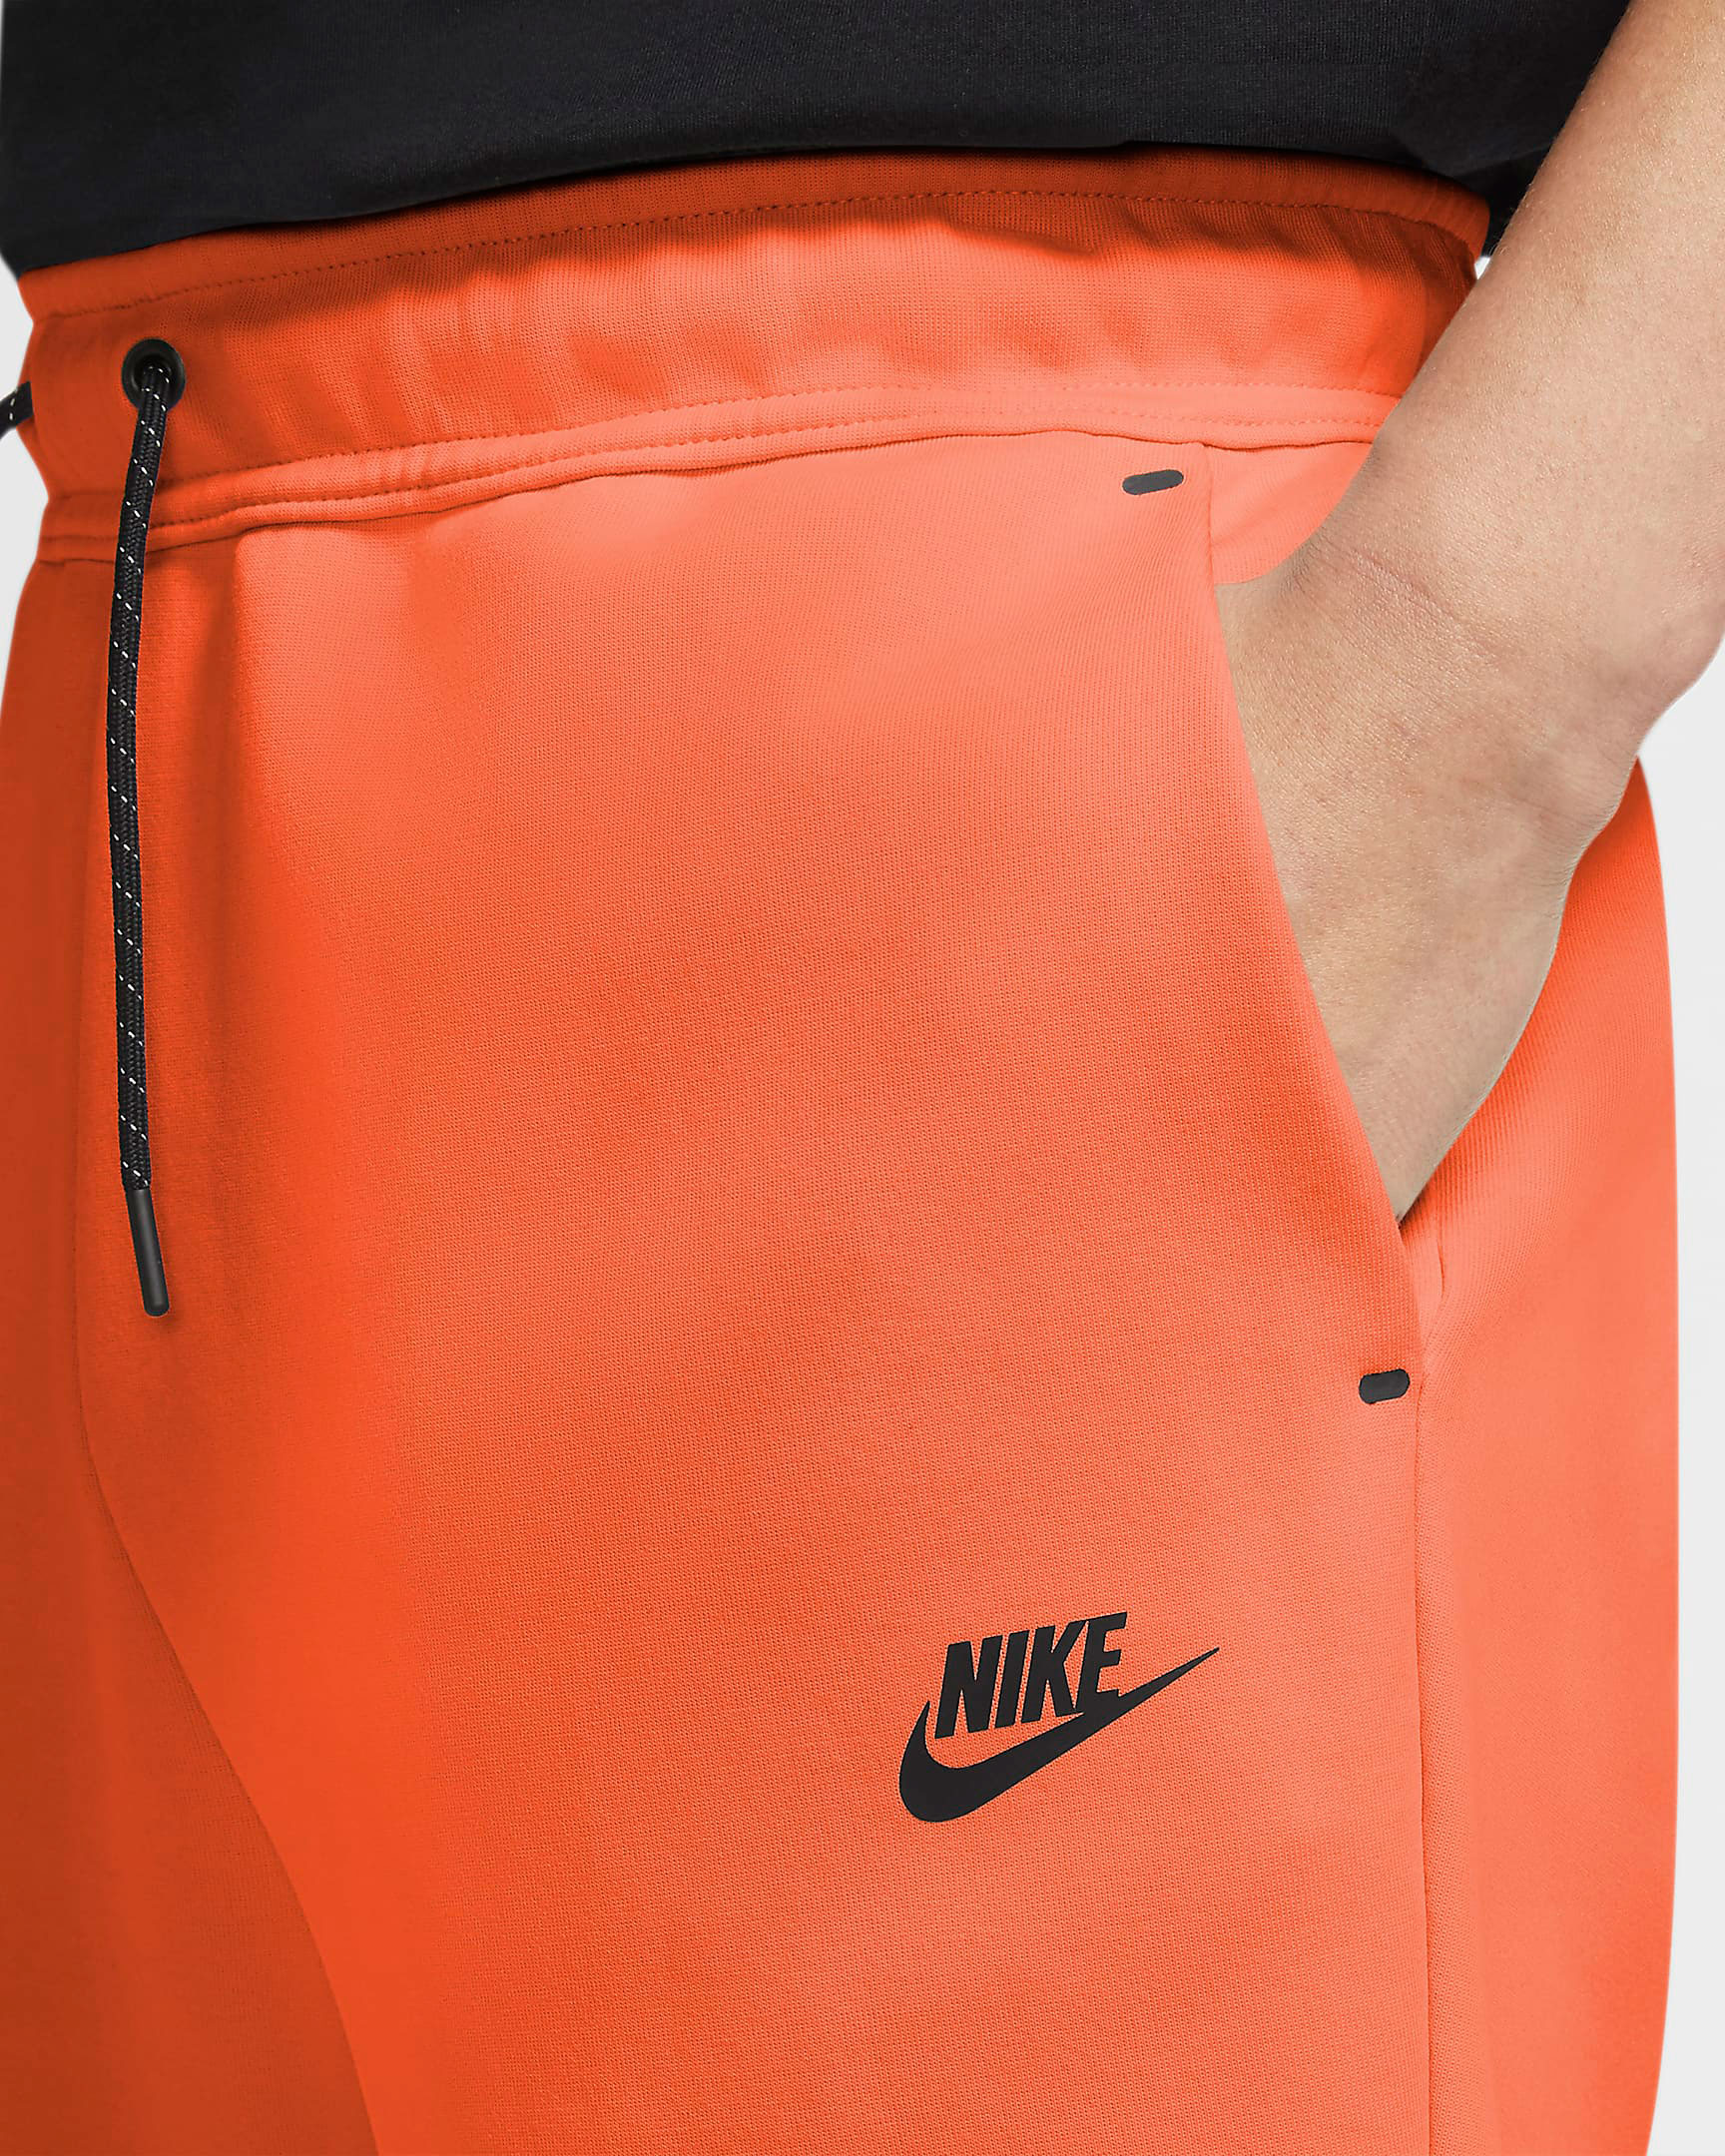 nike-tech-fleece-shorts-orang2